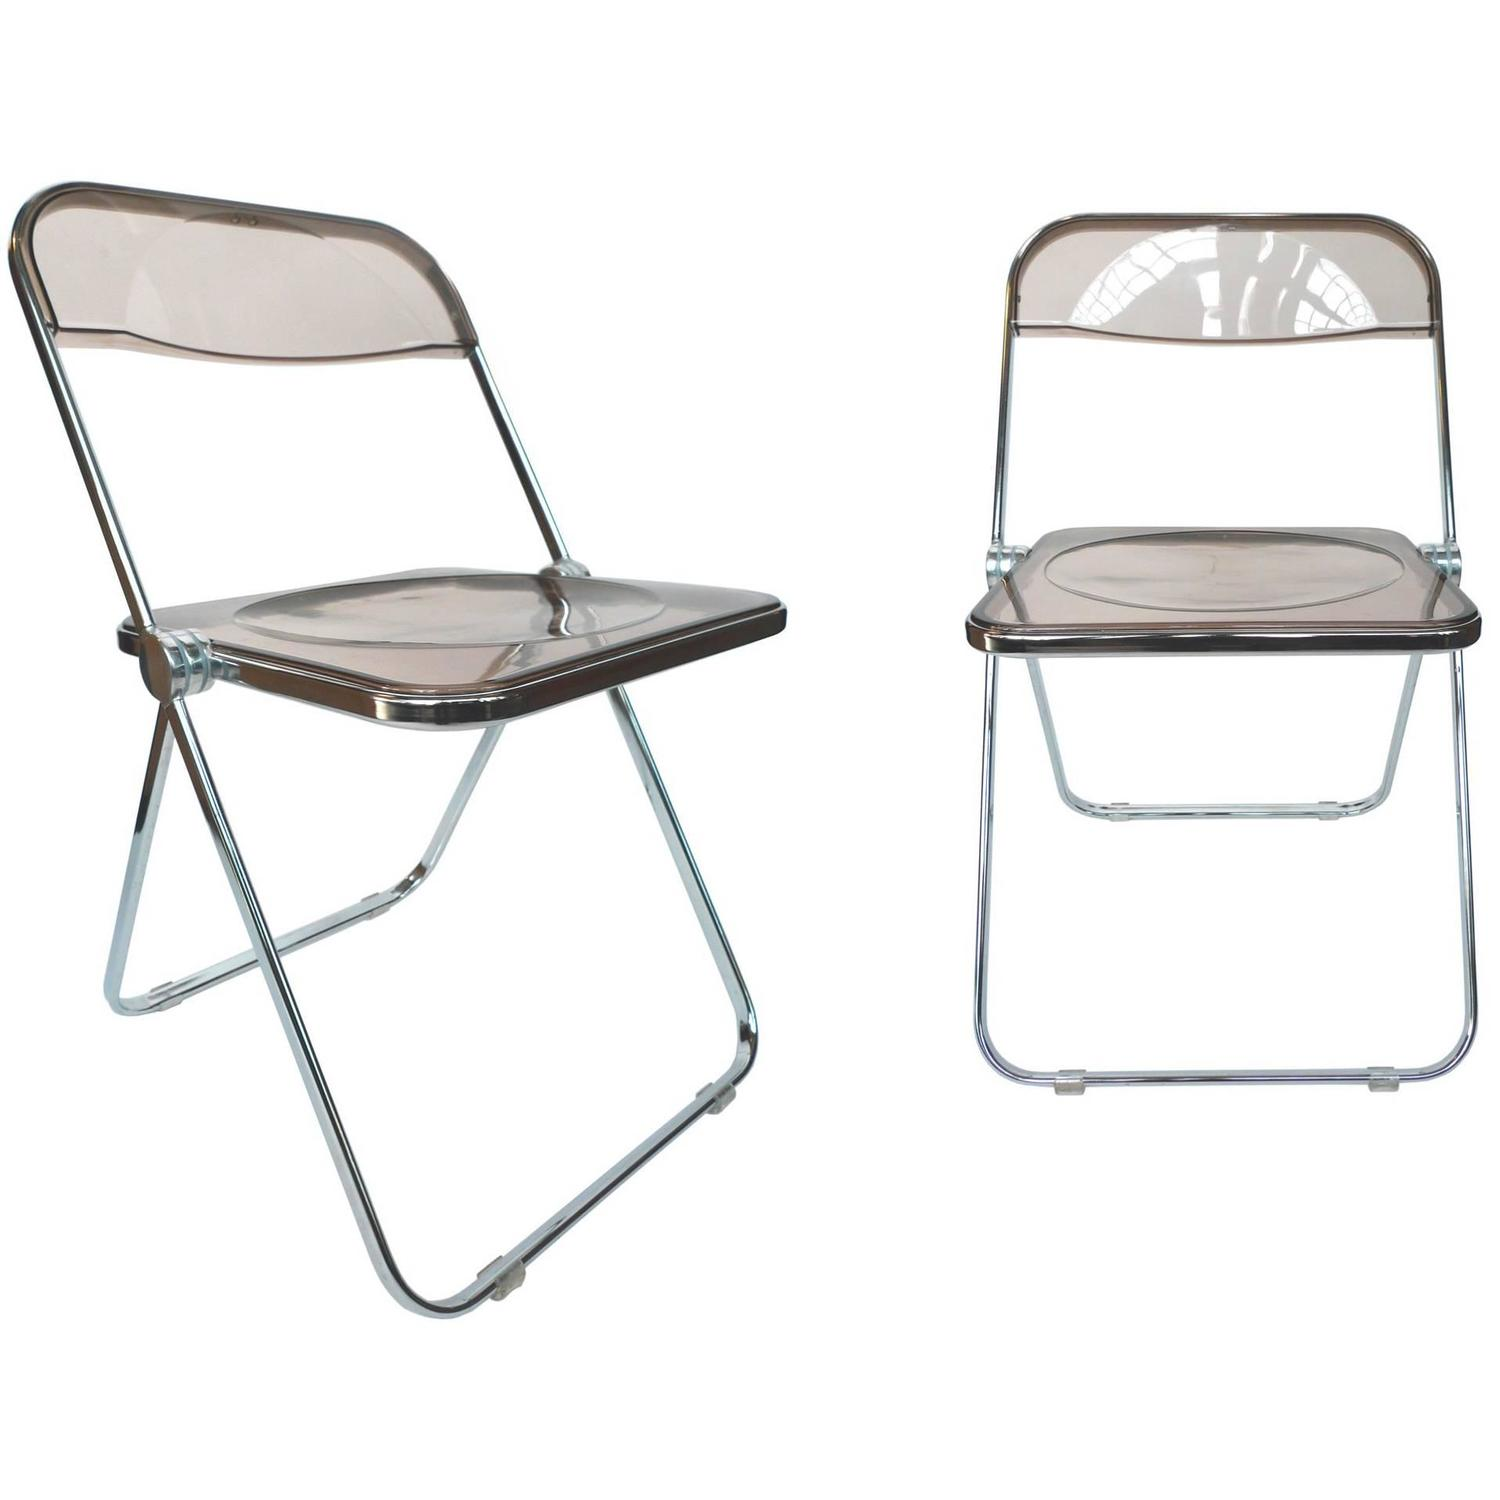 1960s Plia Lucite and Chrome Folding Chairs by Giancarlo Piretti